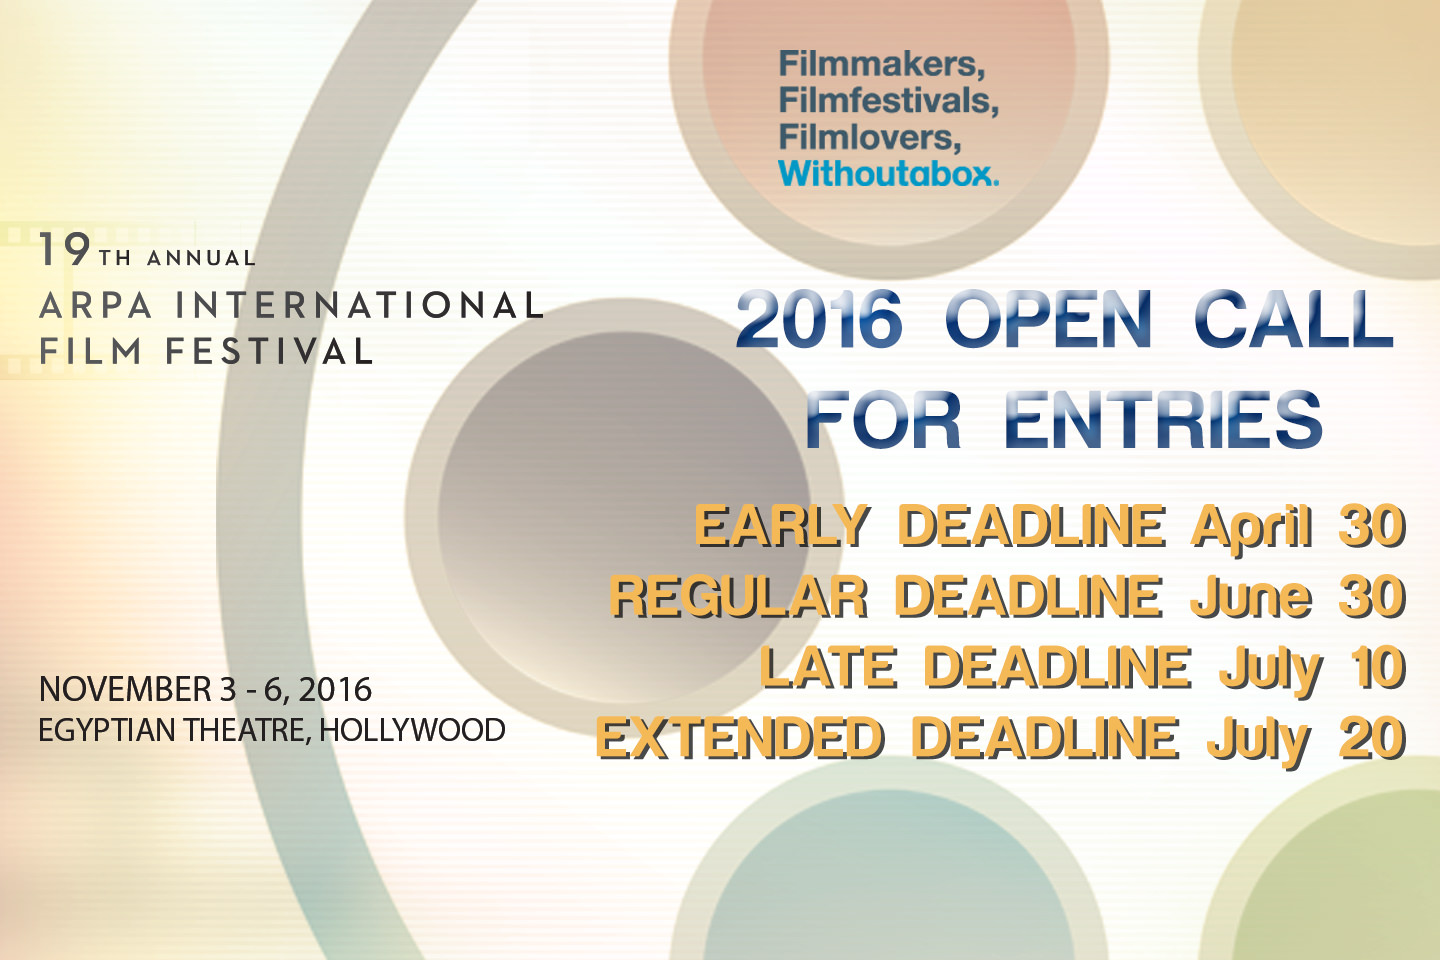 Open Call for Entries 2016